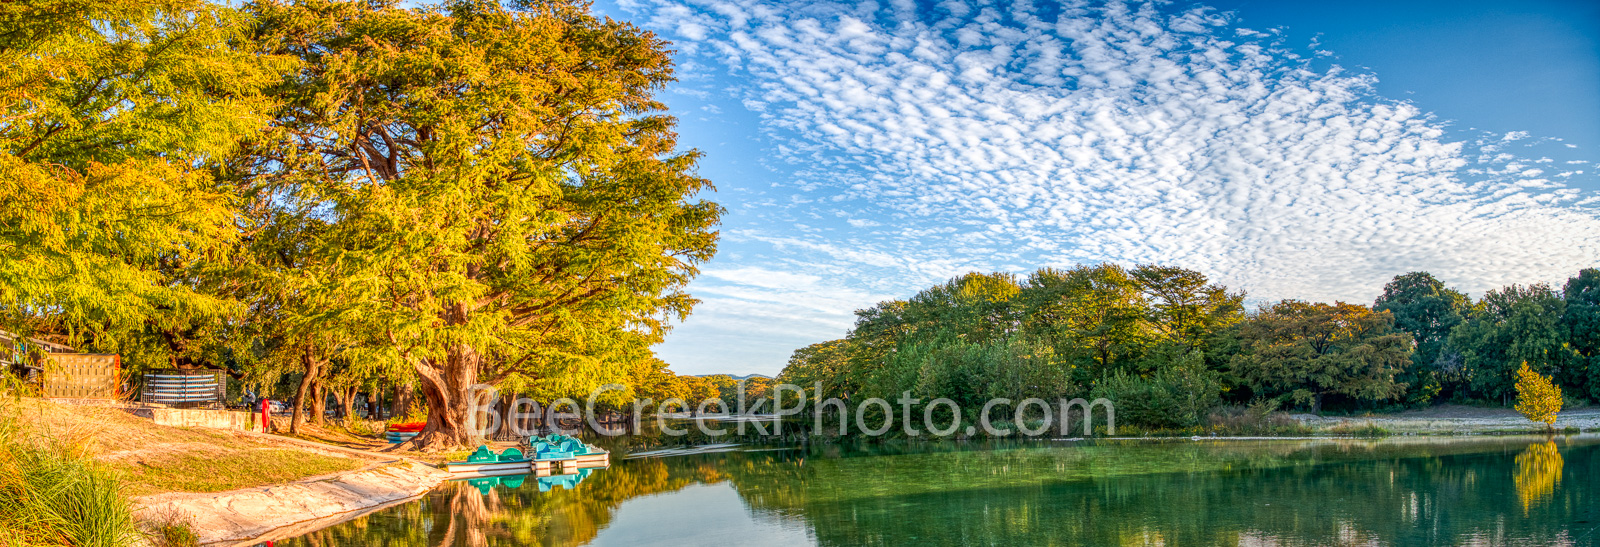 Garner State park, Frio river, river, paddle boats, bald cypress, blue sky, clouds, emerald green water, fall, pano, panorama, golden, burnt orange, rusty red, cypress, , photo